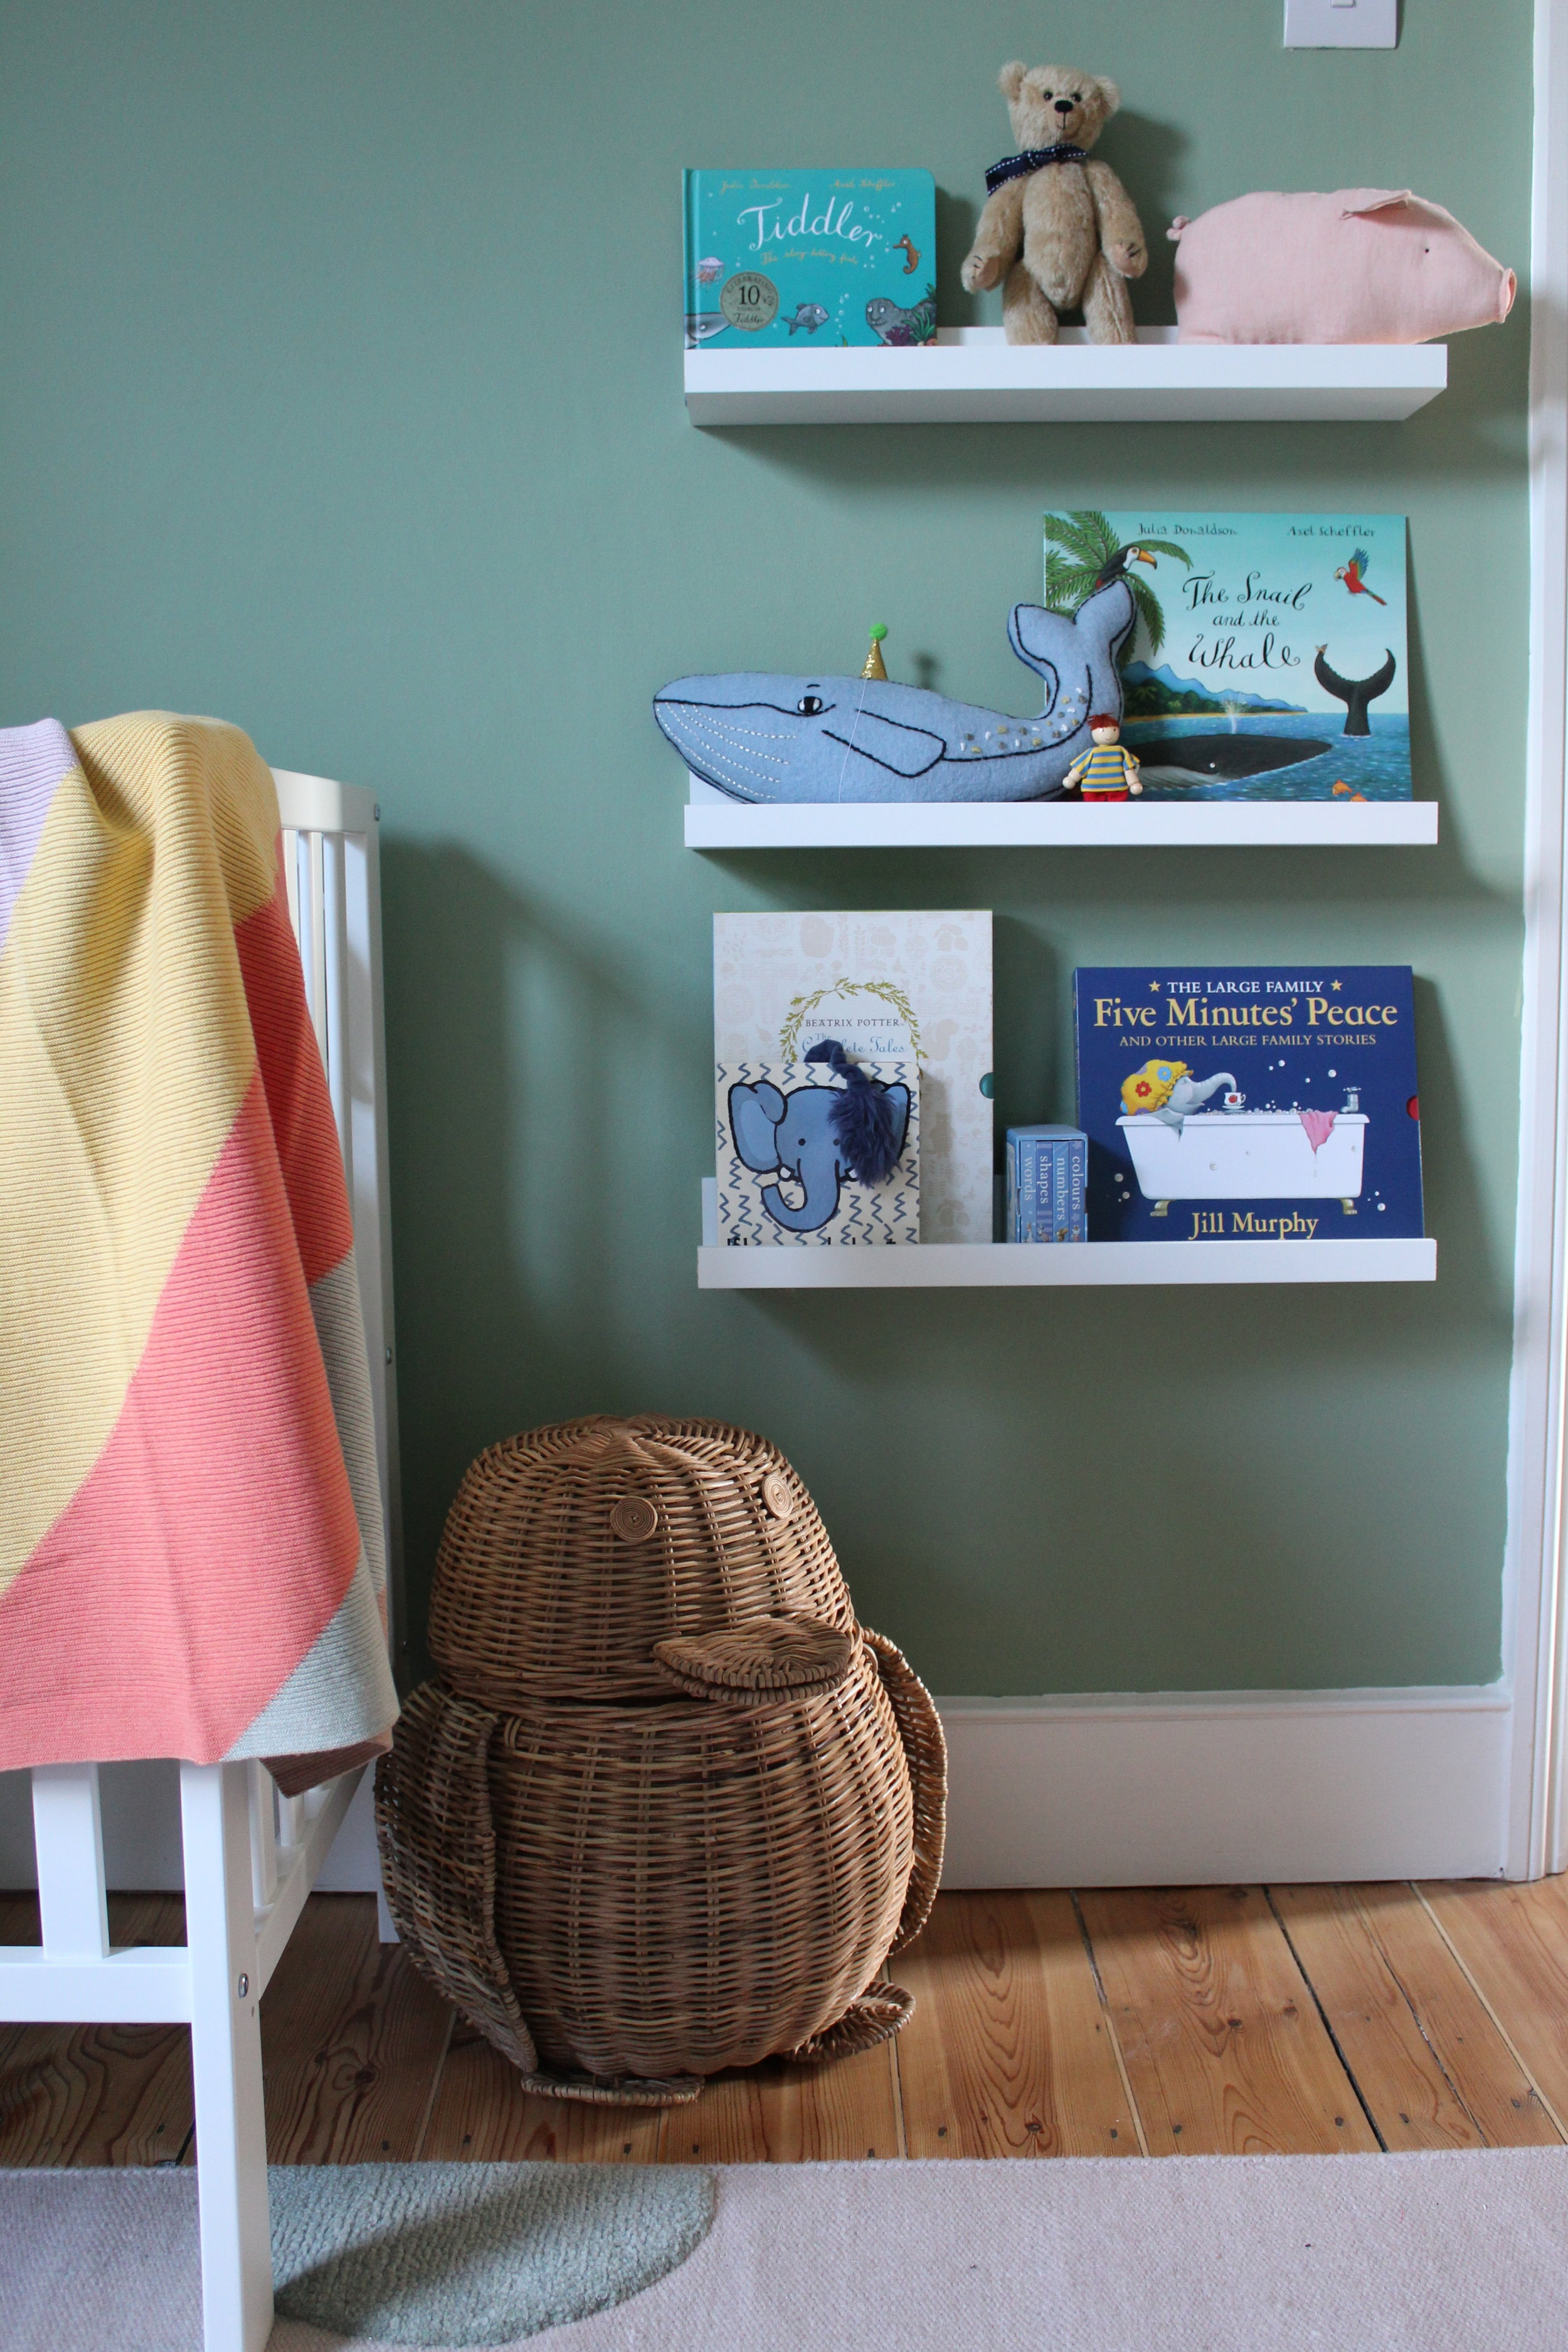 The walls are painted in Farrow & Ball's Breakfast Room Green which creates feels fun and lively enough to hold the colourful accessories, whilst also creating a certain serenity in the room. The wicker penguin storage basket is from Zara Home - I mean, how could I resist!? The book shelving is from Ikea and the baby blanket is Mama's & Papa's.